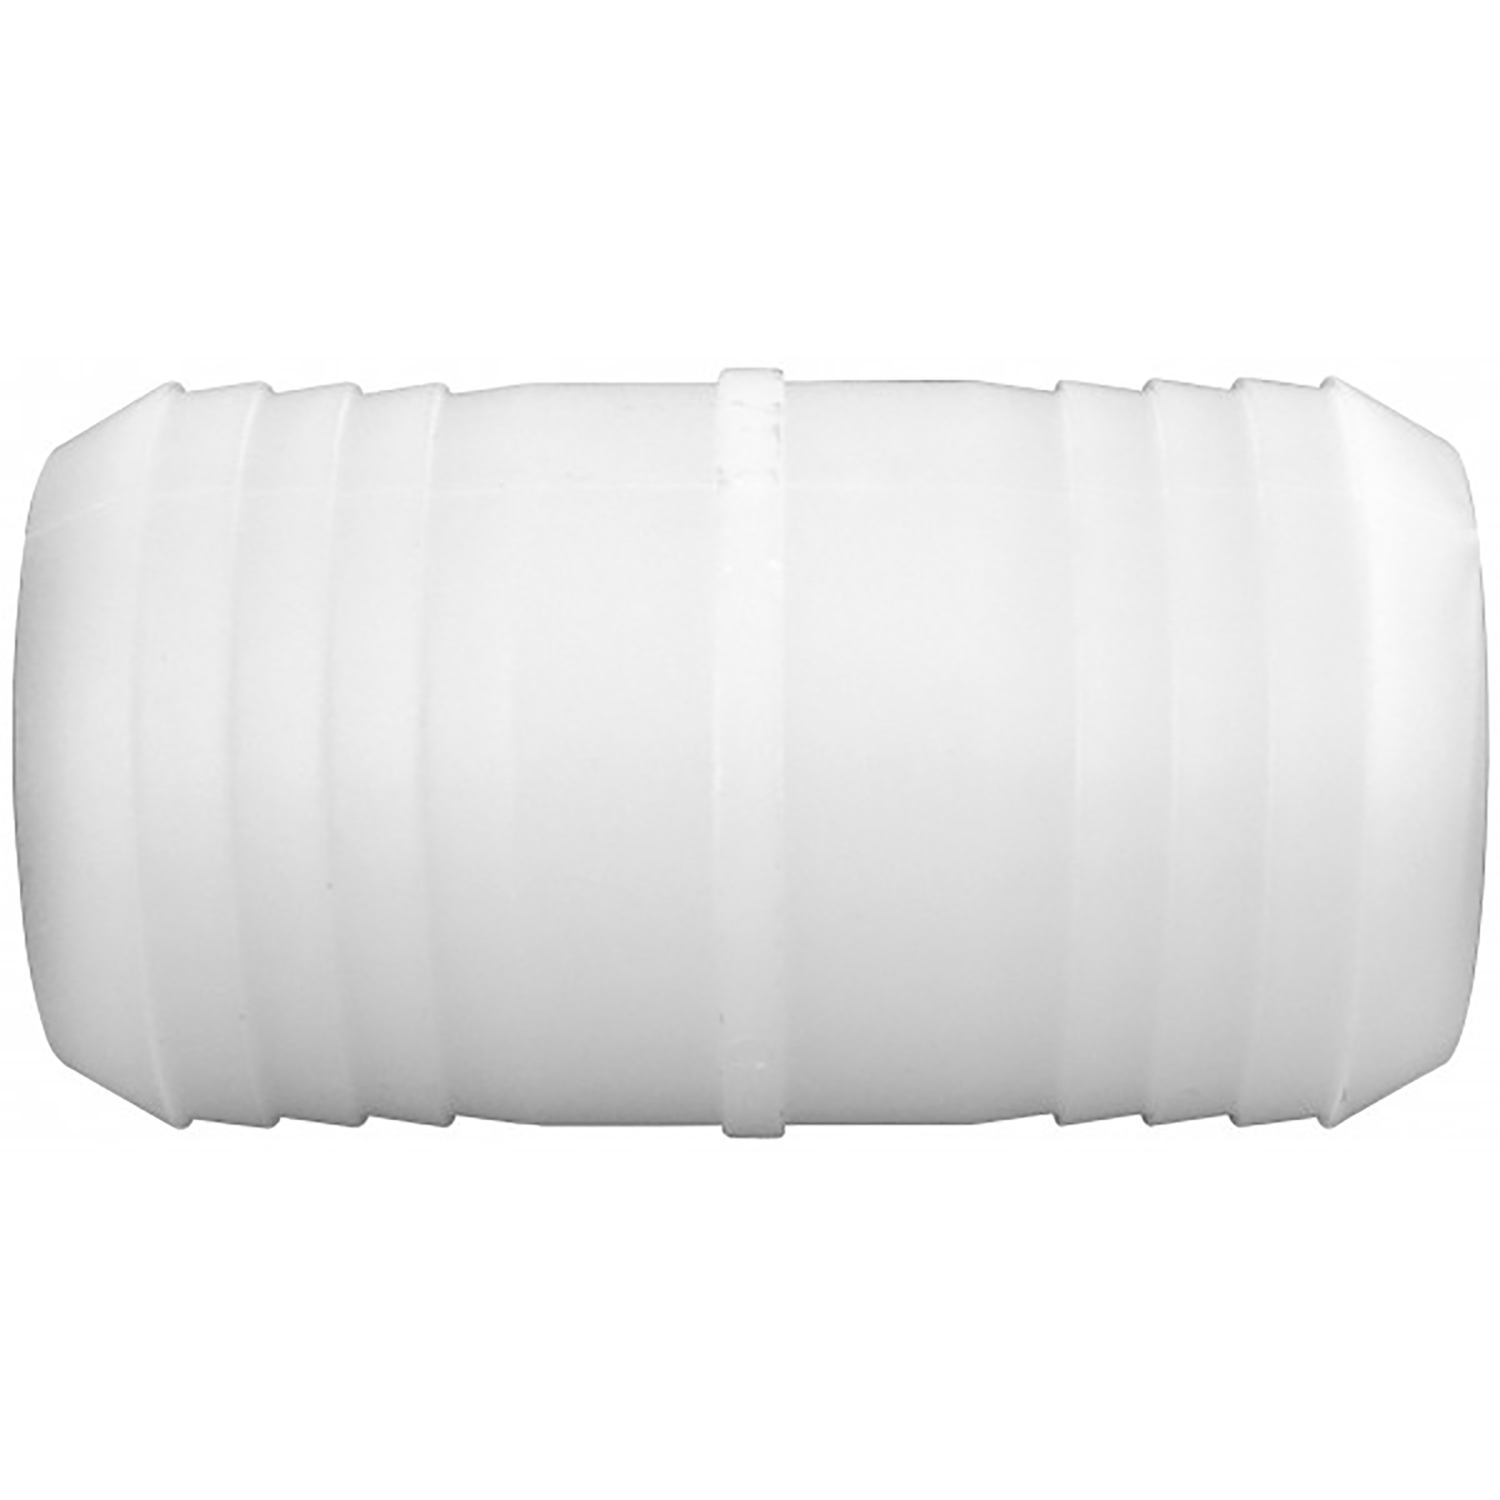 Green Leaf  Nylon  Hose Mender  5/16 in. Dia. x 5/16 in. Dia. White  1 each